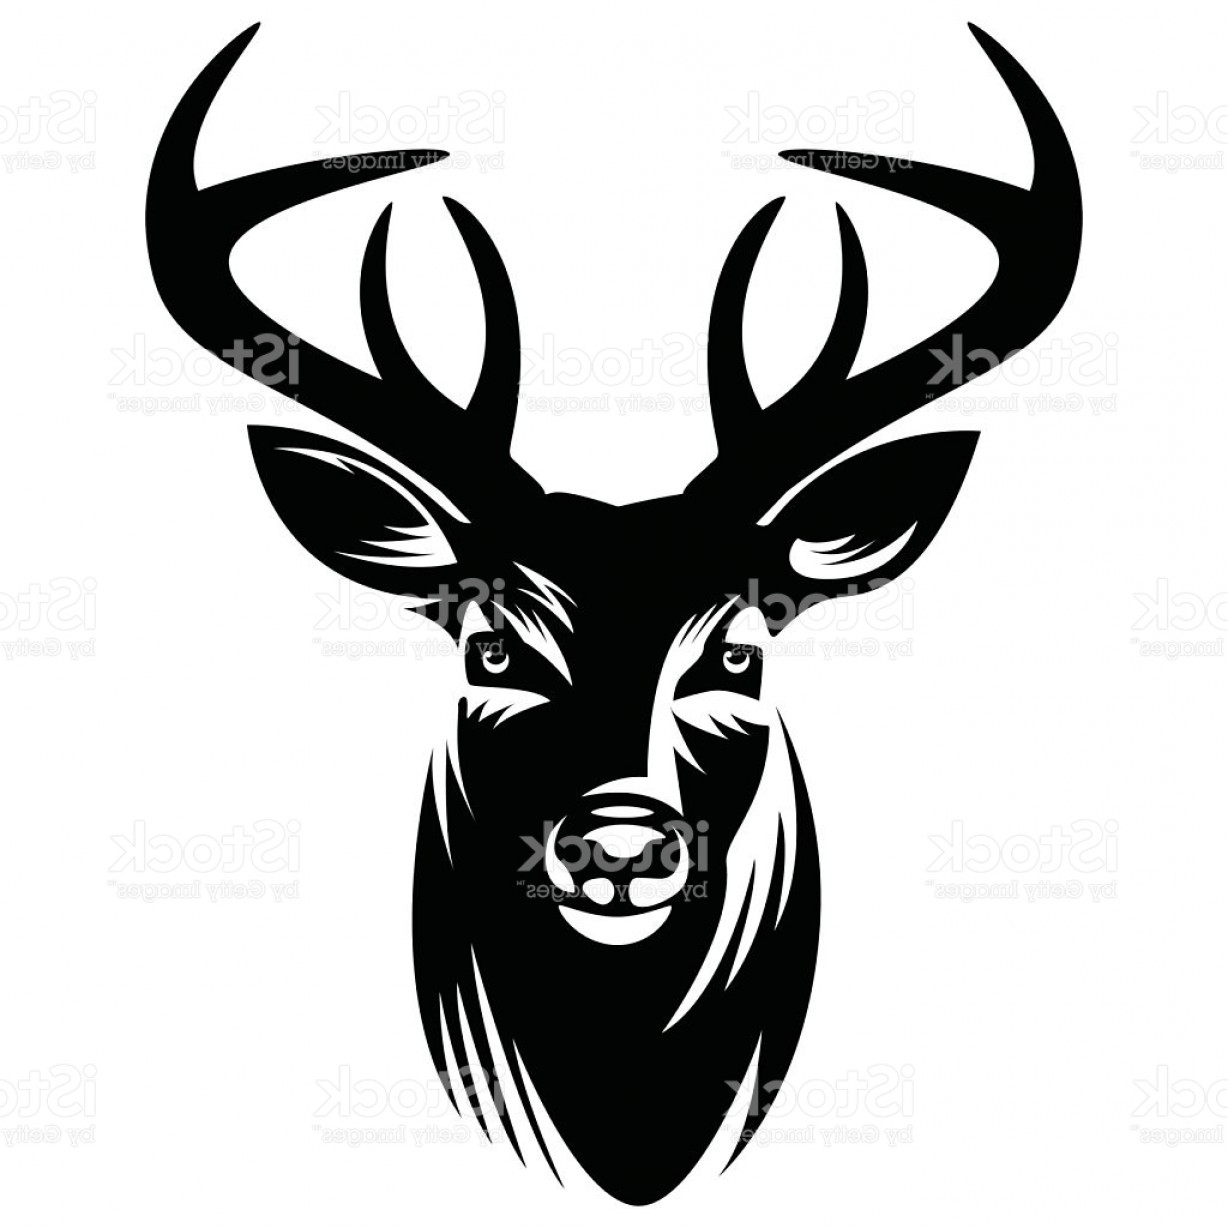 1228x1228 Vector Art Deer Head Lazttweet